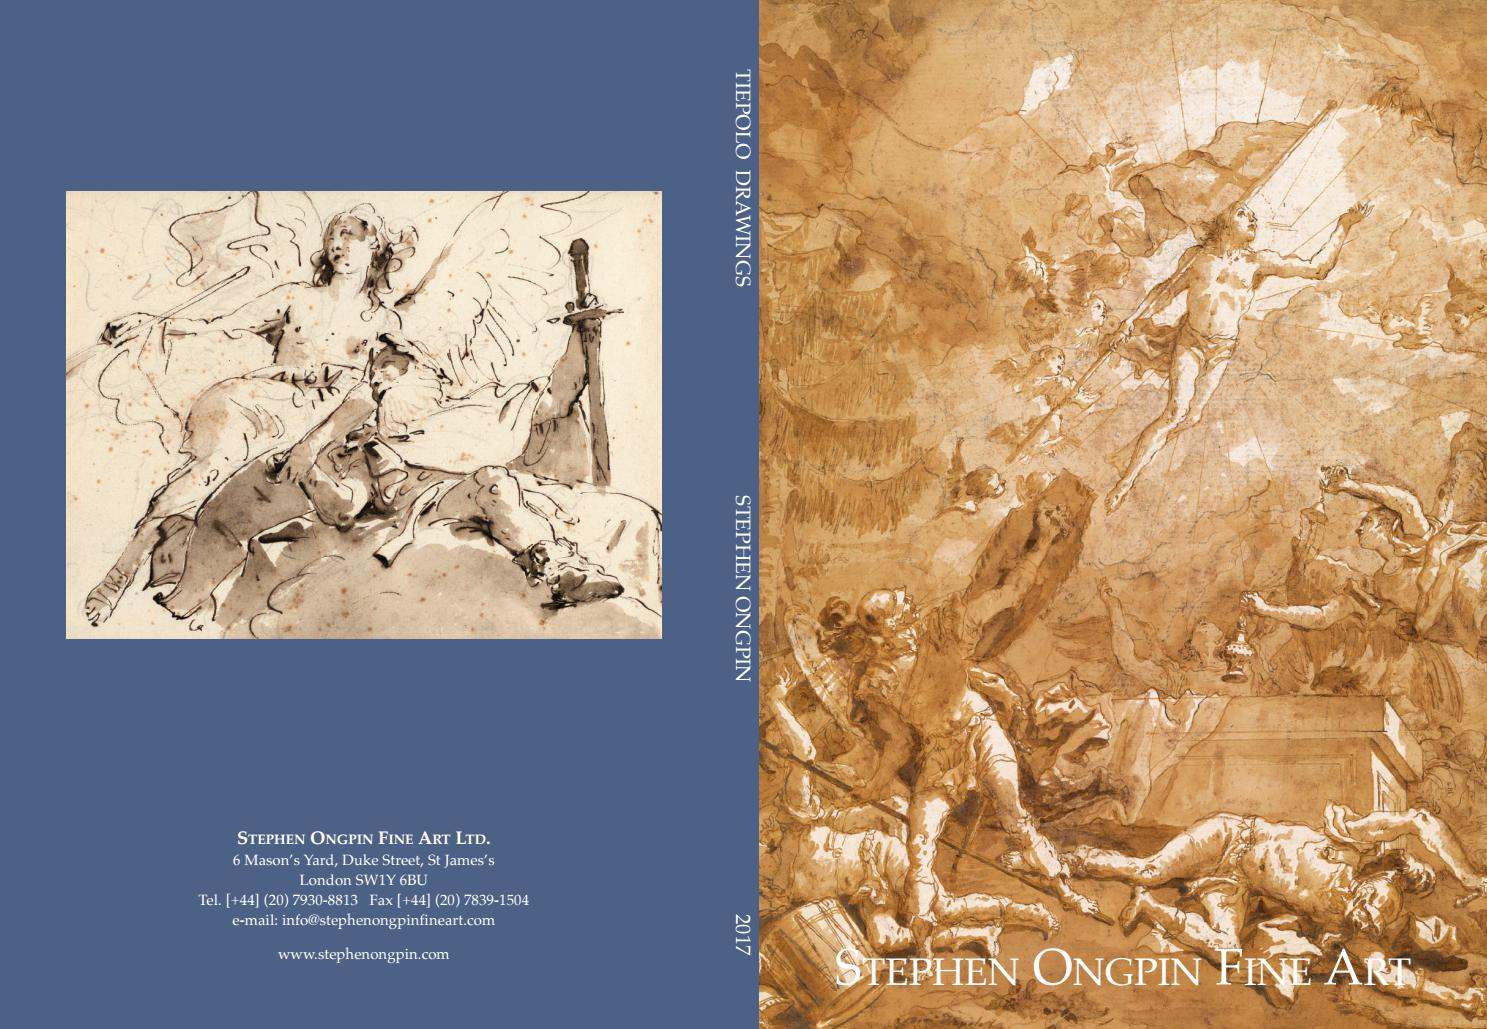 Stephen Ongpin Fine Art - Tiepolo Drawings by ArtSolution